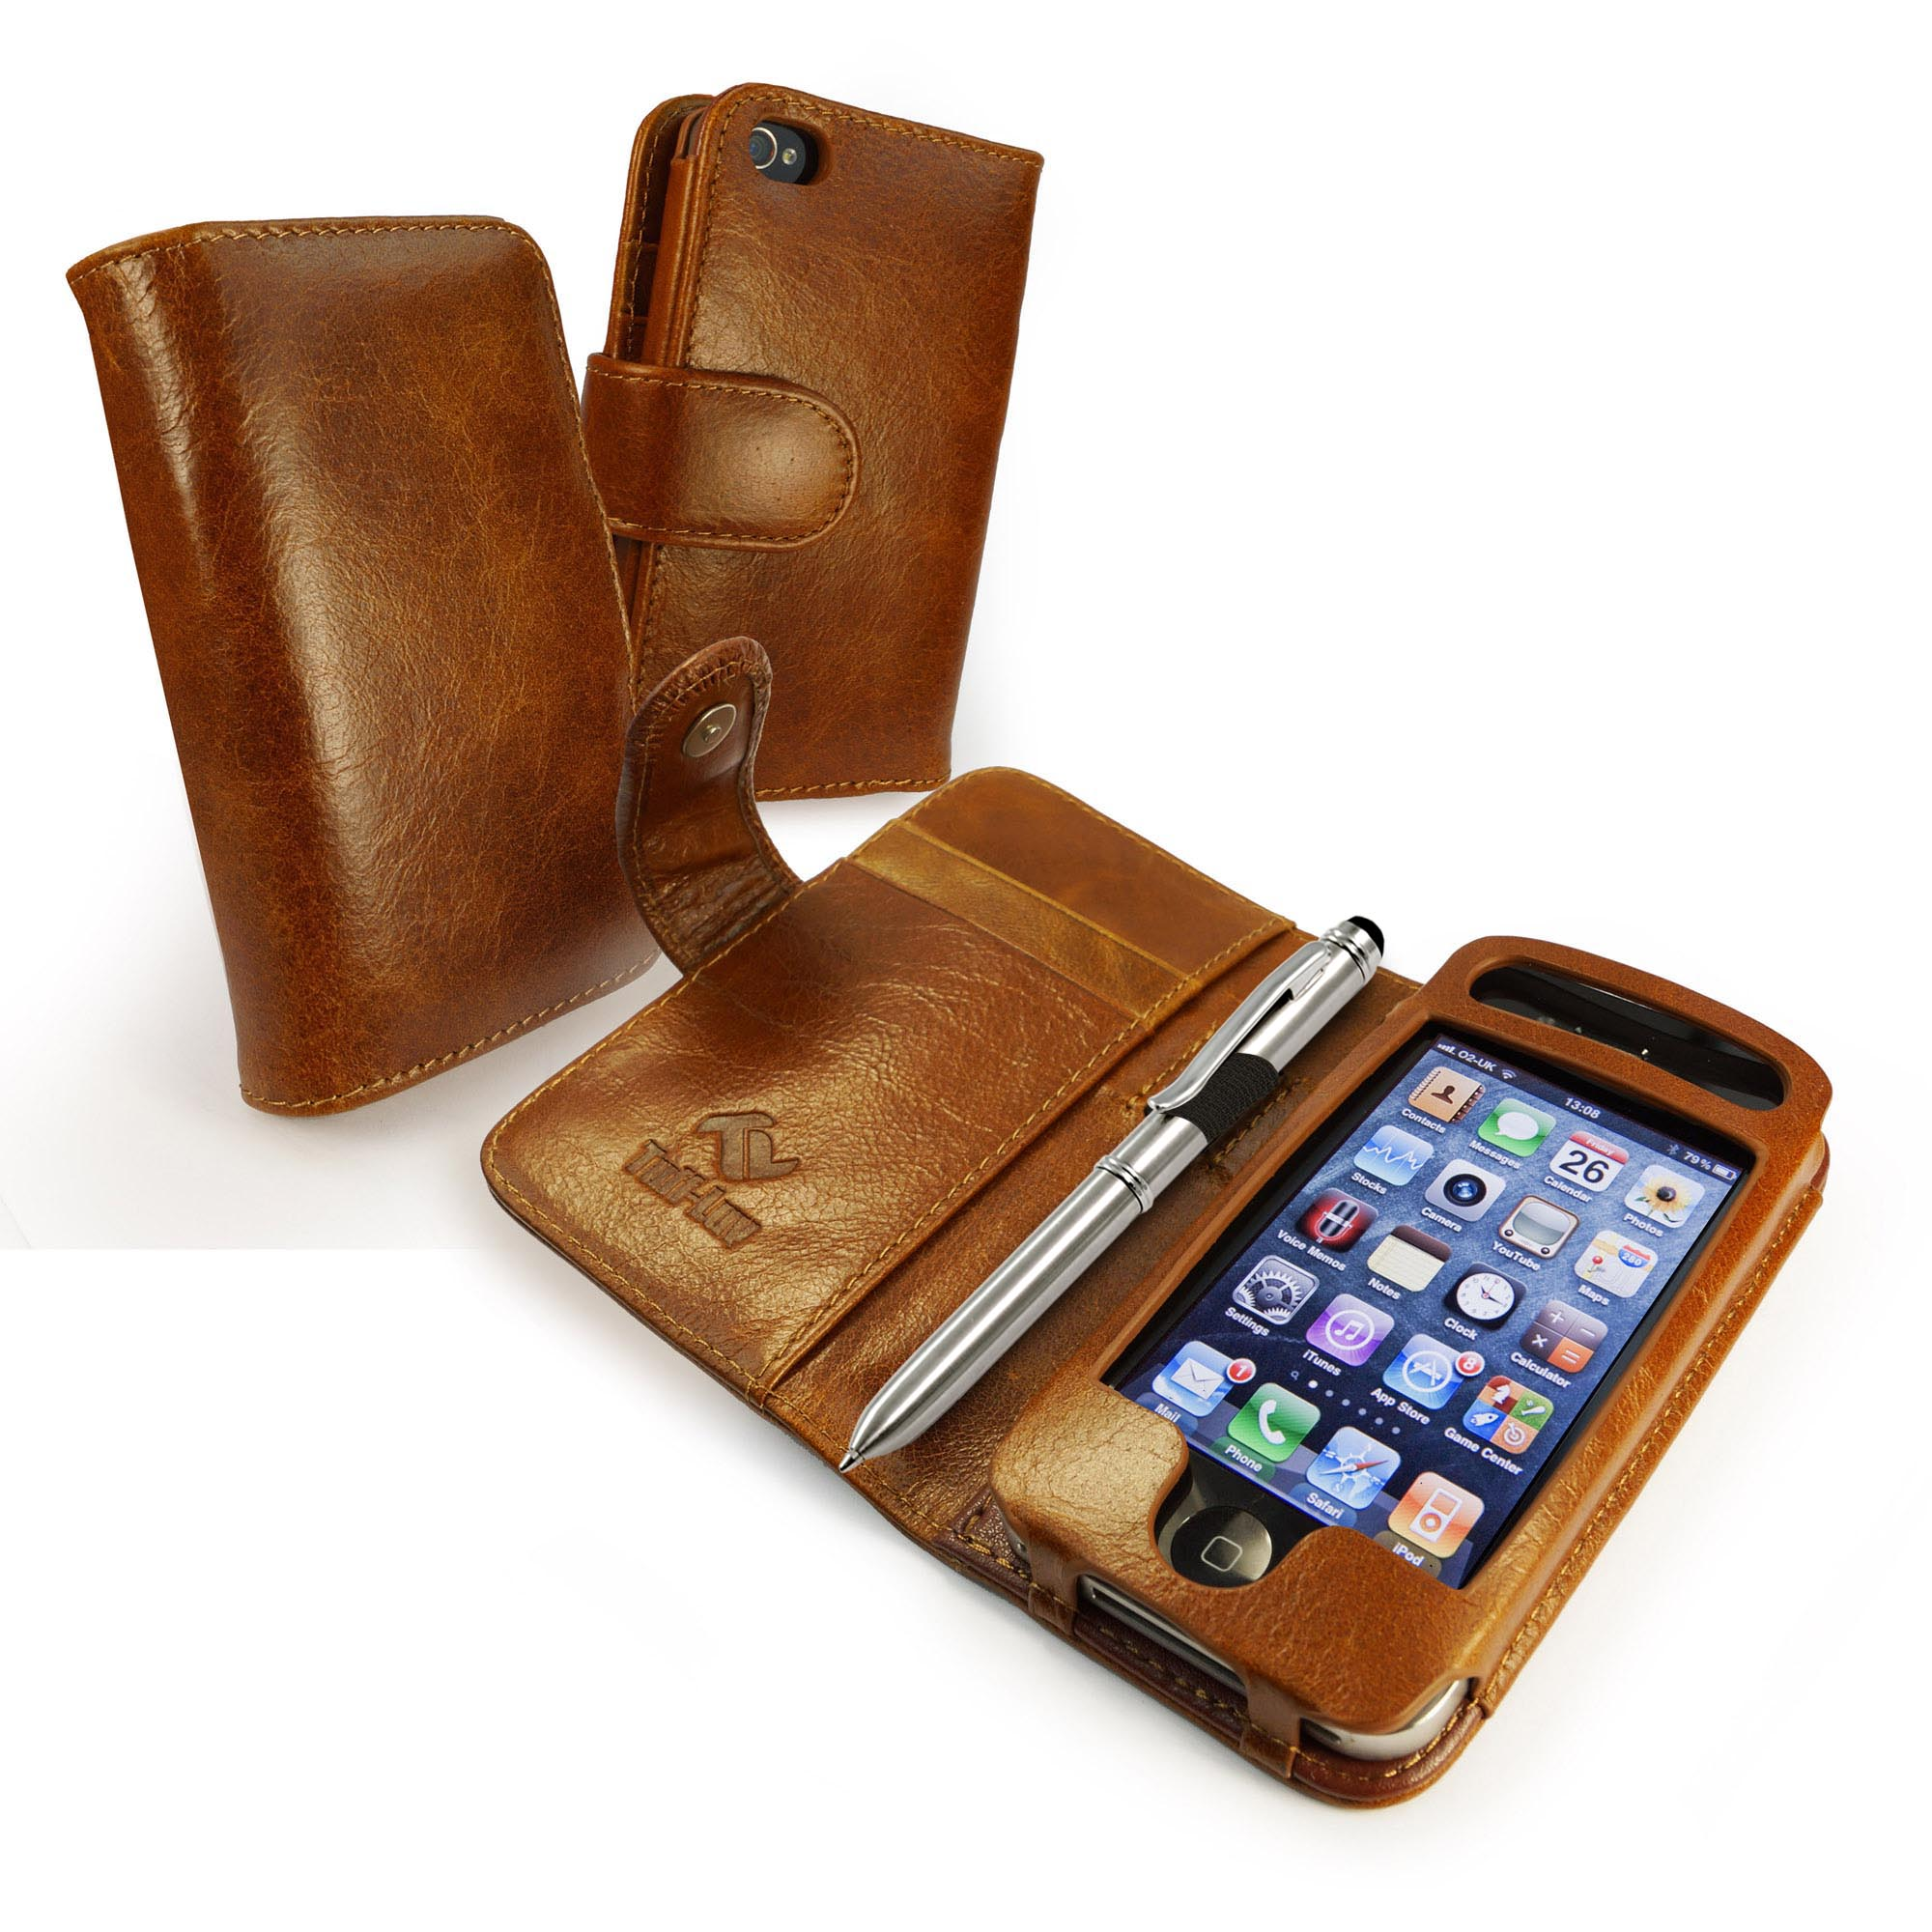 iphone 4 wallet case tuff vintage leather wallet style for iphone 4s 3518